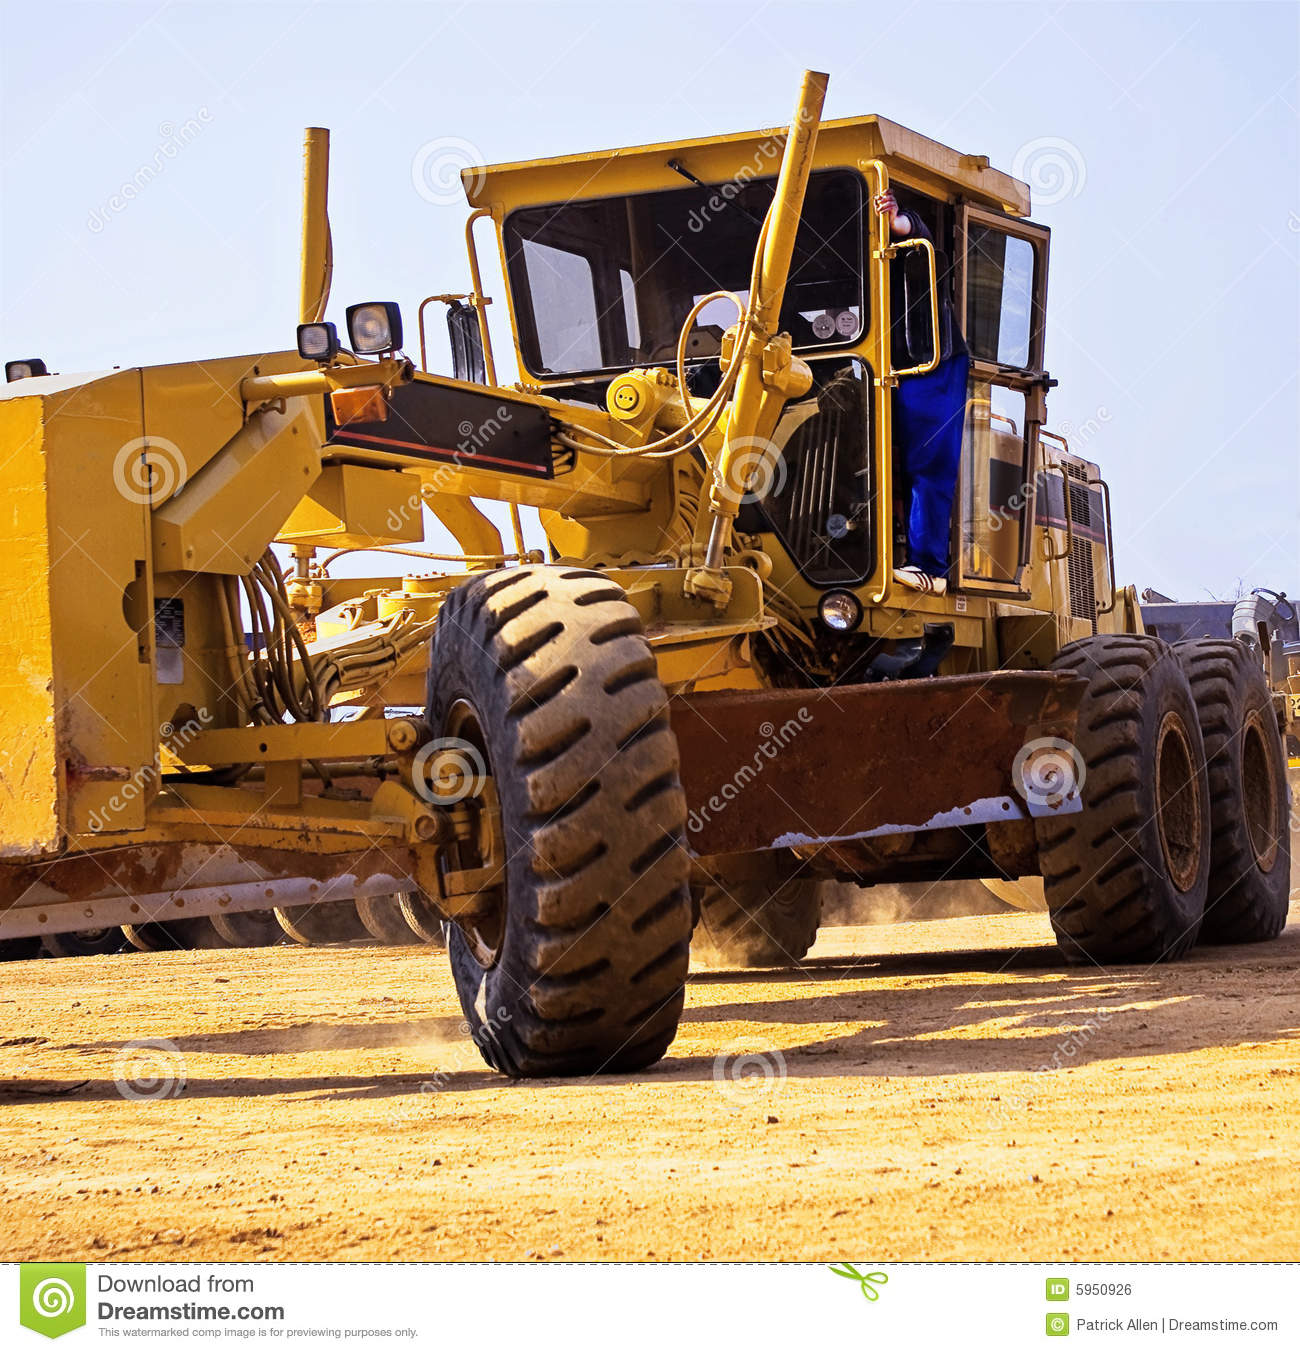 Caterpillar 140H - Turning